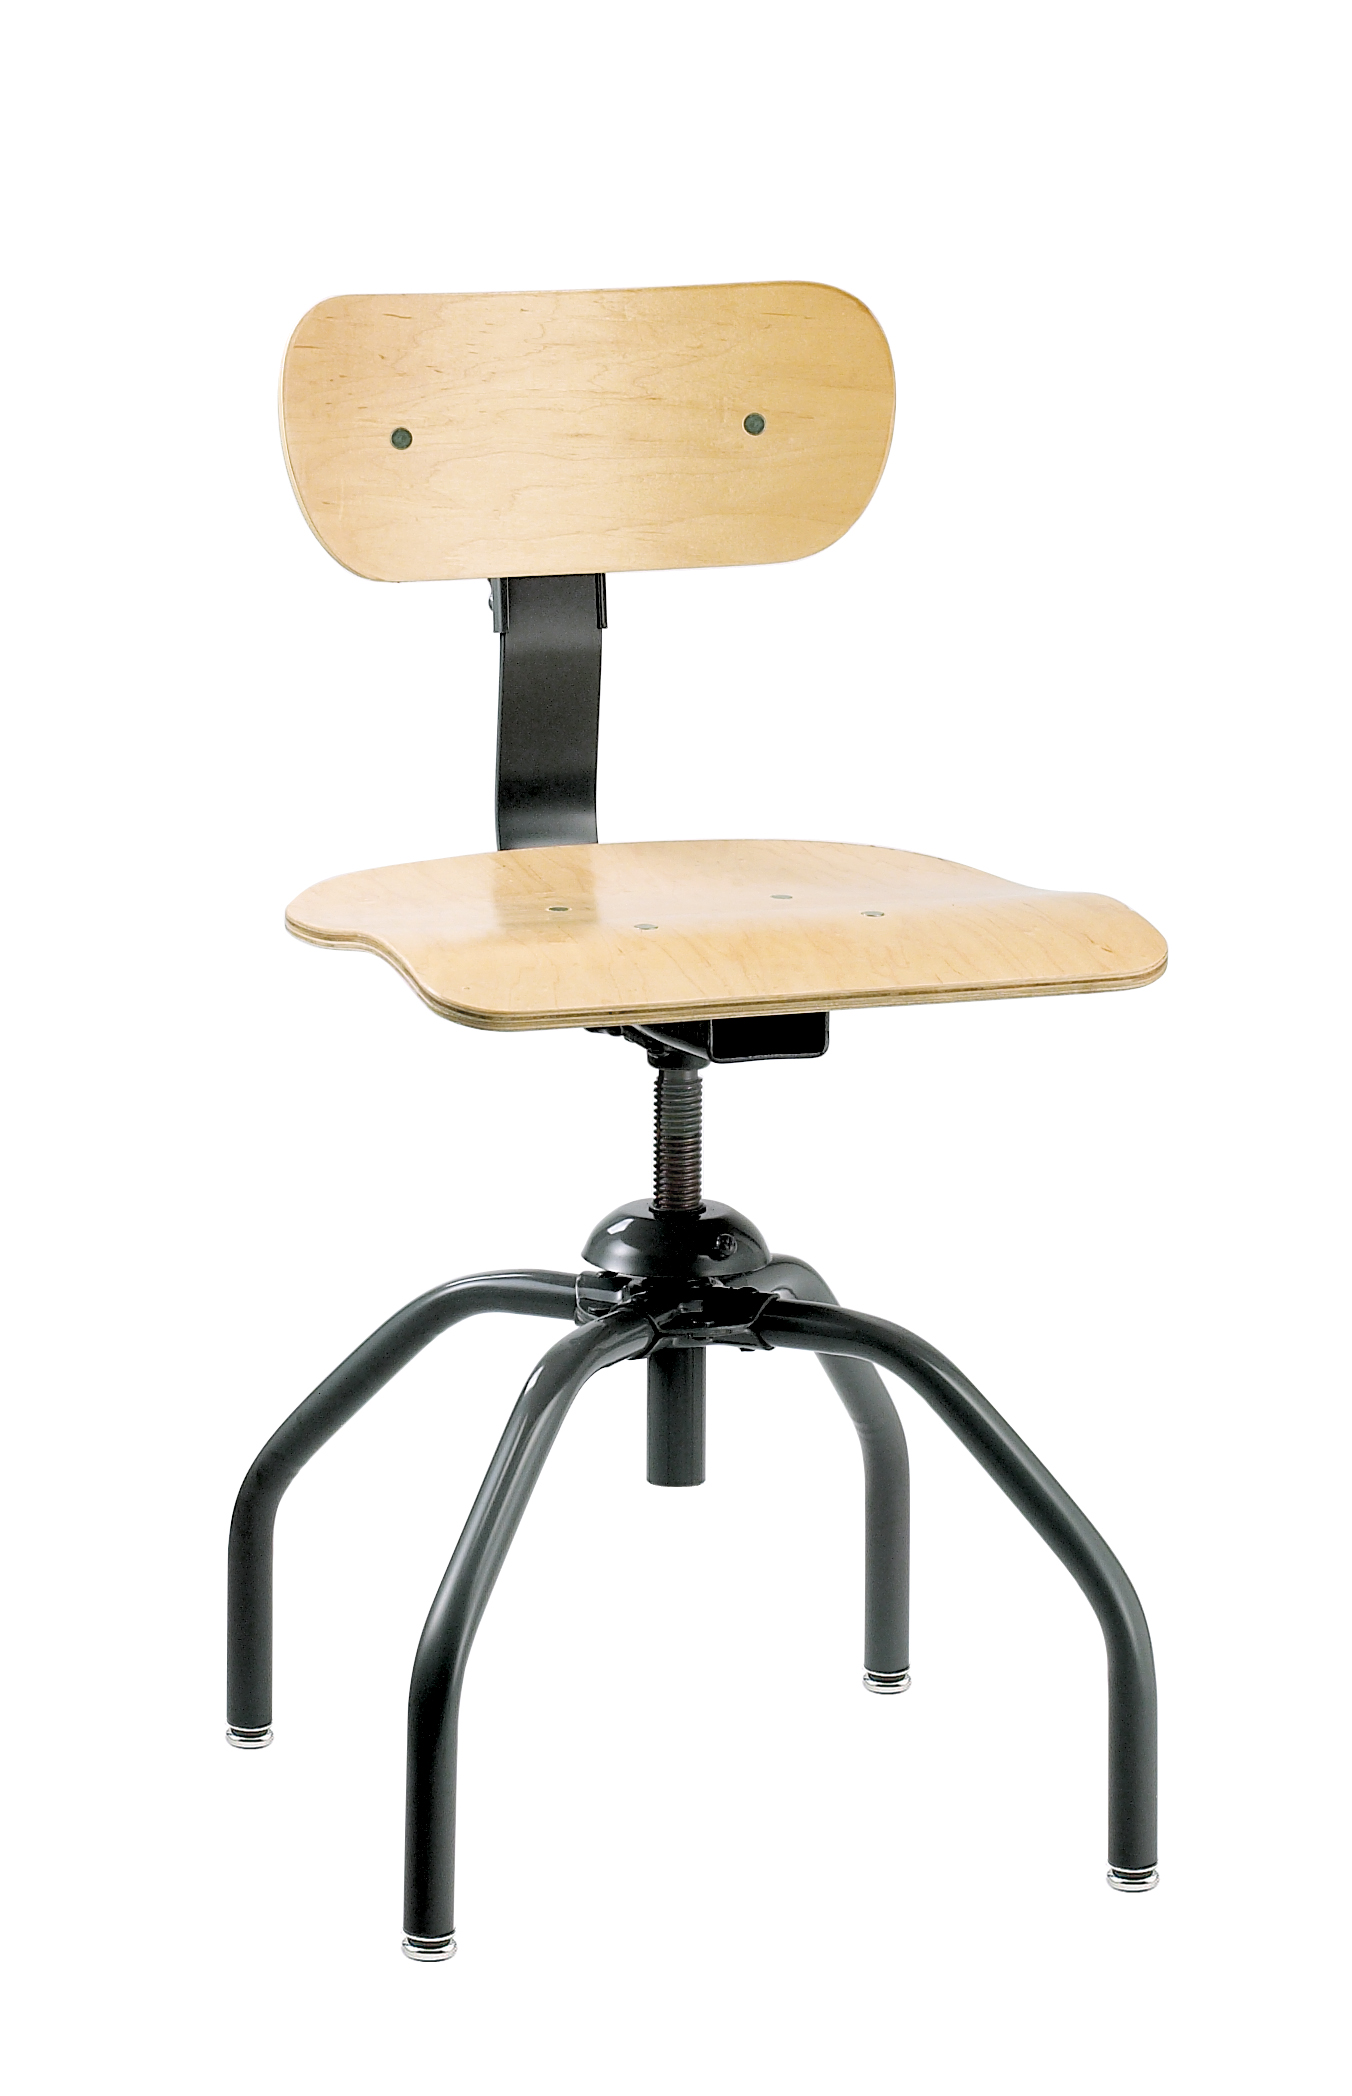 minimal chair height stand test patch leather bevco 1260 4 leg plywood swivel ii